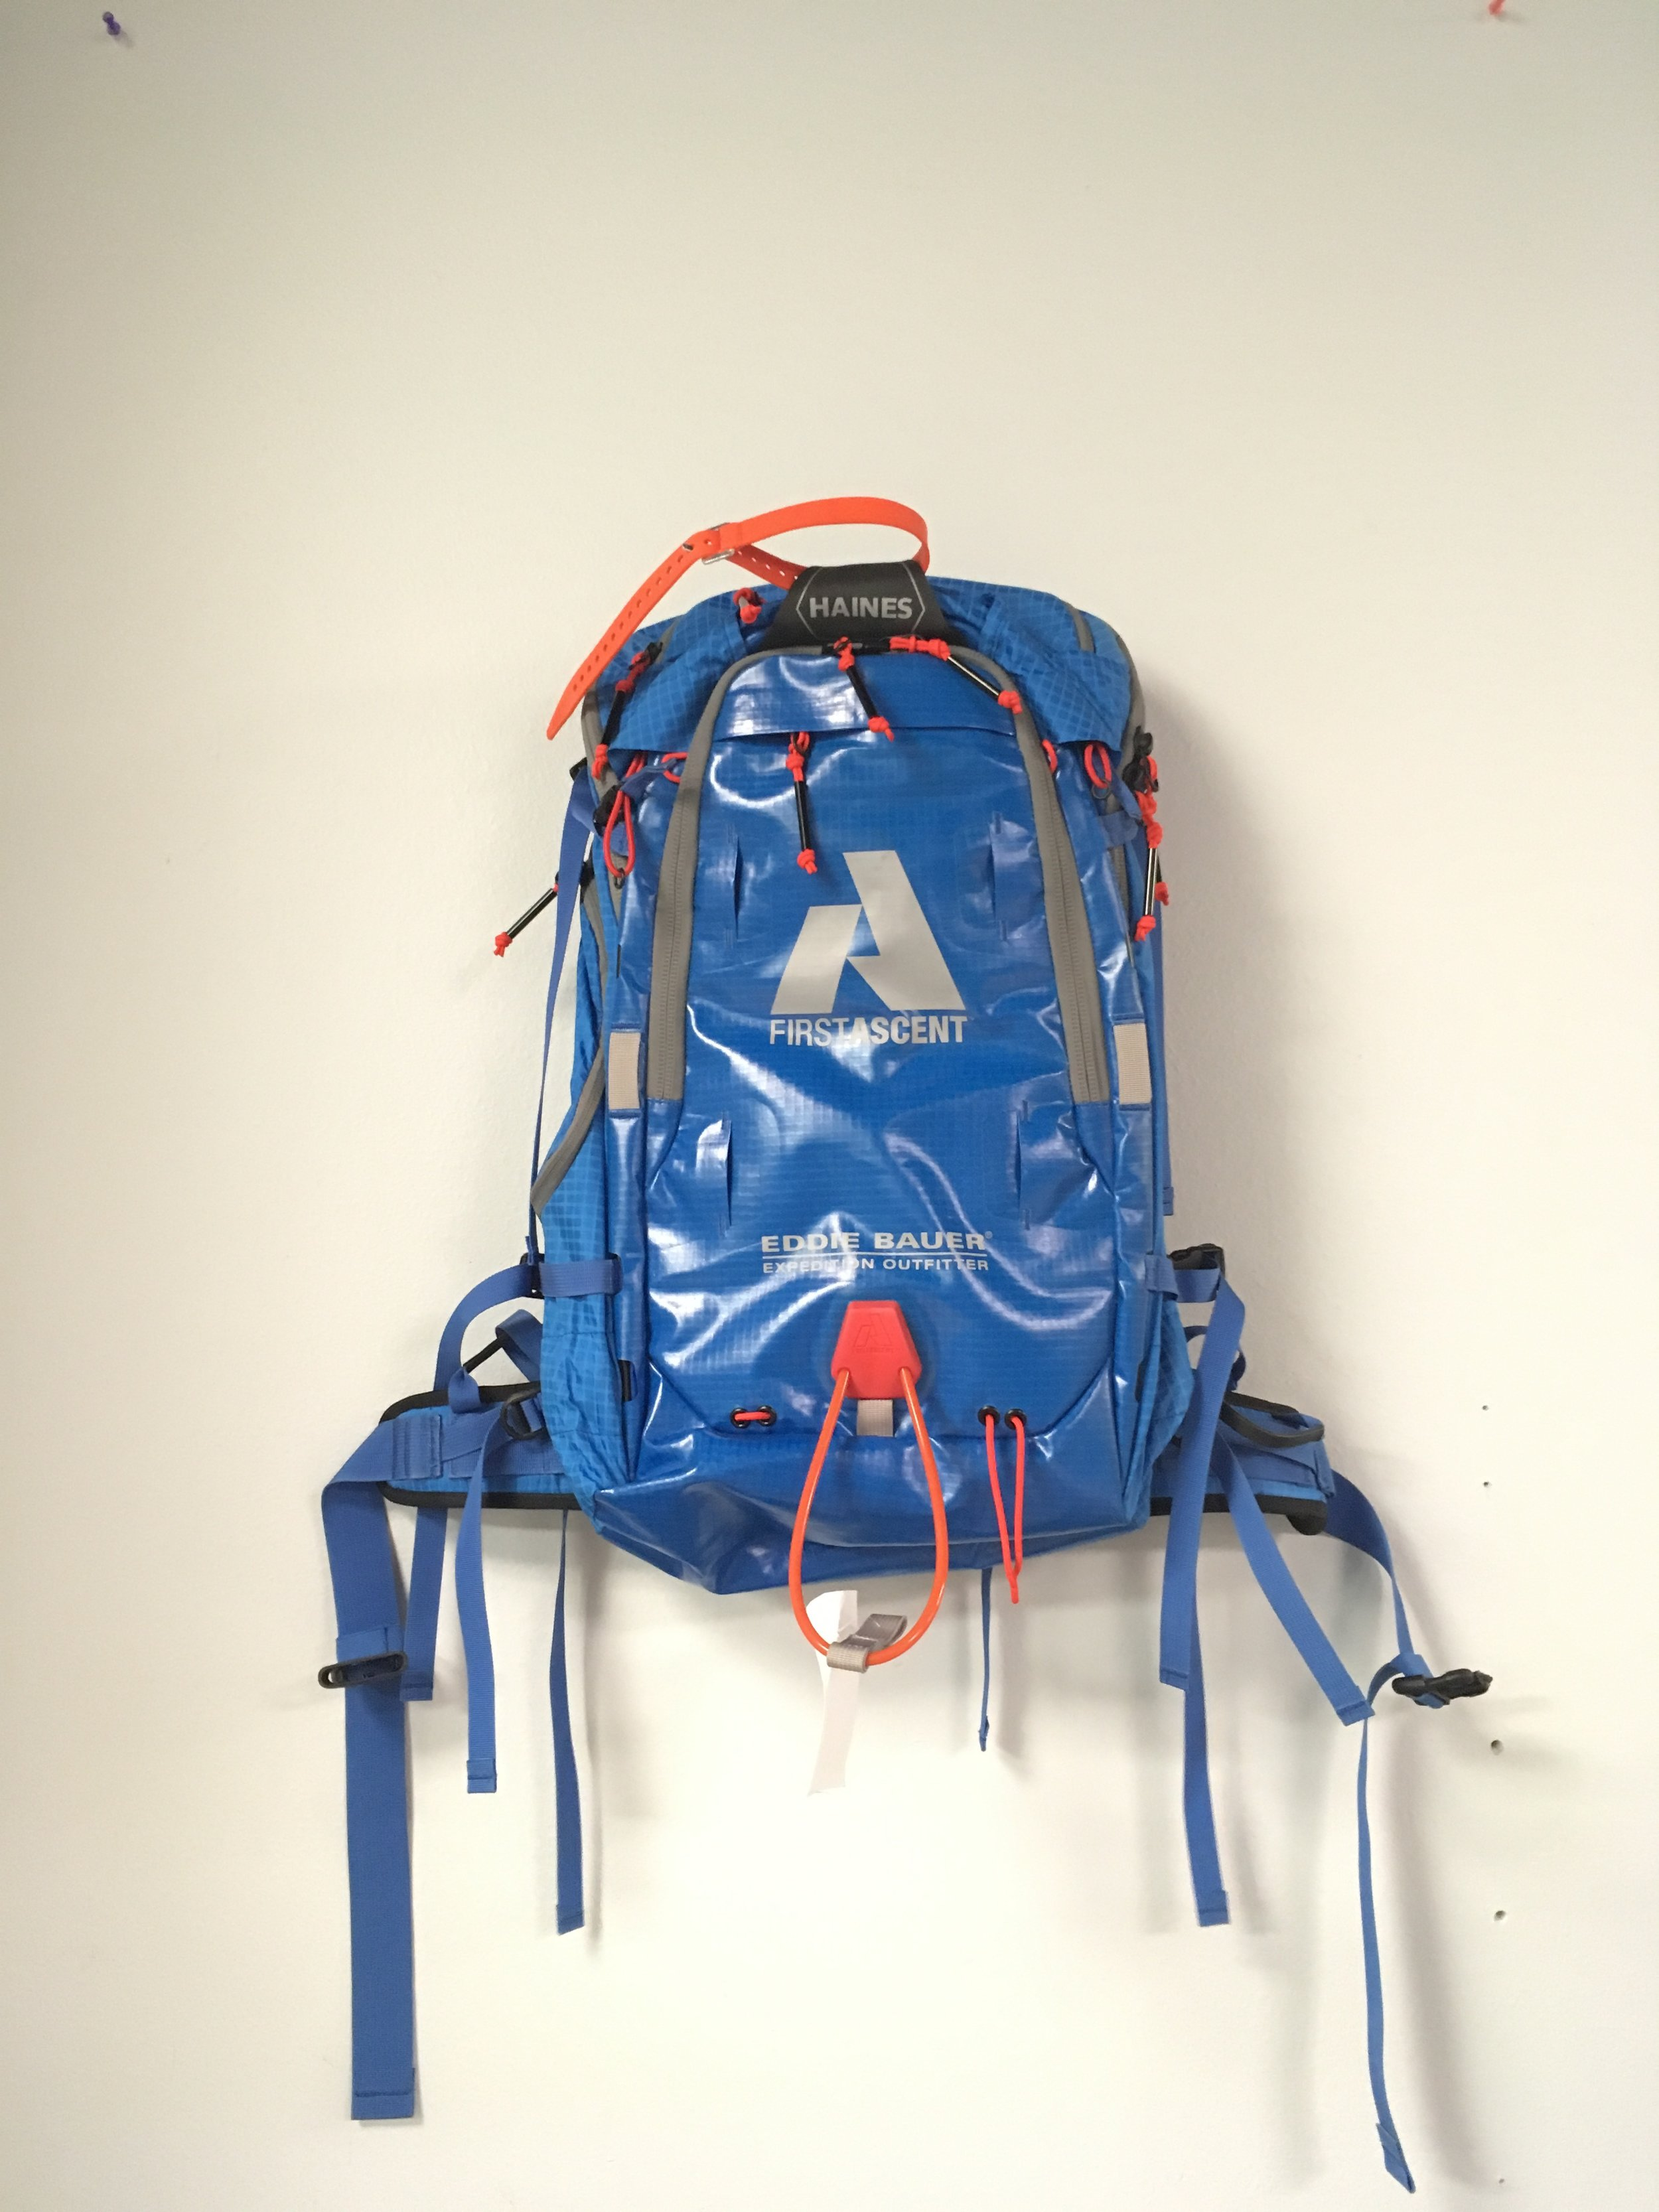 Need a burly winter pack? We have you covered with Eddie Bauer's Haines backpack. Features include:  - A frame and vertical ski carry systems that are fully adjustable for any ski size - 35 liter main compartment expandable to 45 litres - Sheaths for probe, shovel and handle – easy/quick access to avy gear - Retractable Ice axe carry loops - Lined front pocket for keeping wet skins away from dry gear - Side and top access to main compartment - Removable aluminum pack frame  MSRP for the backpack is $249 but we have it at $129!